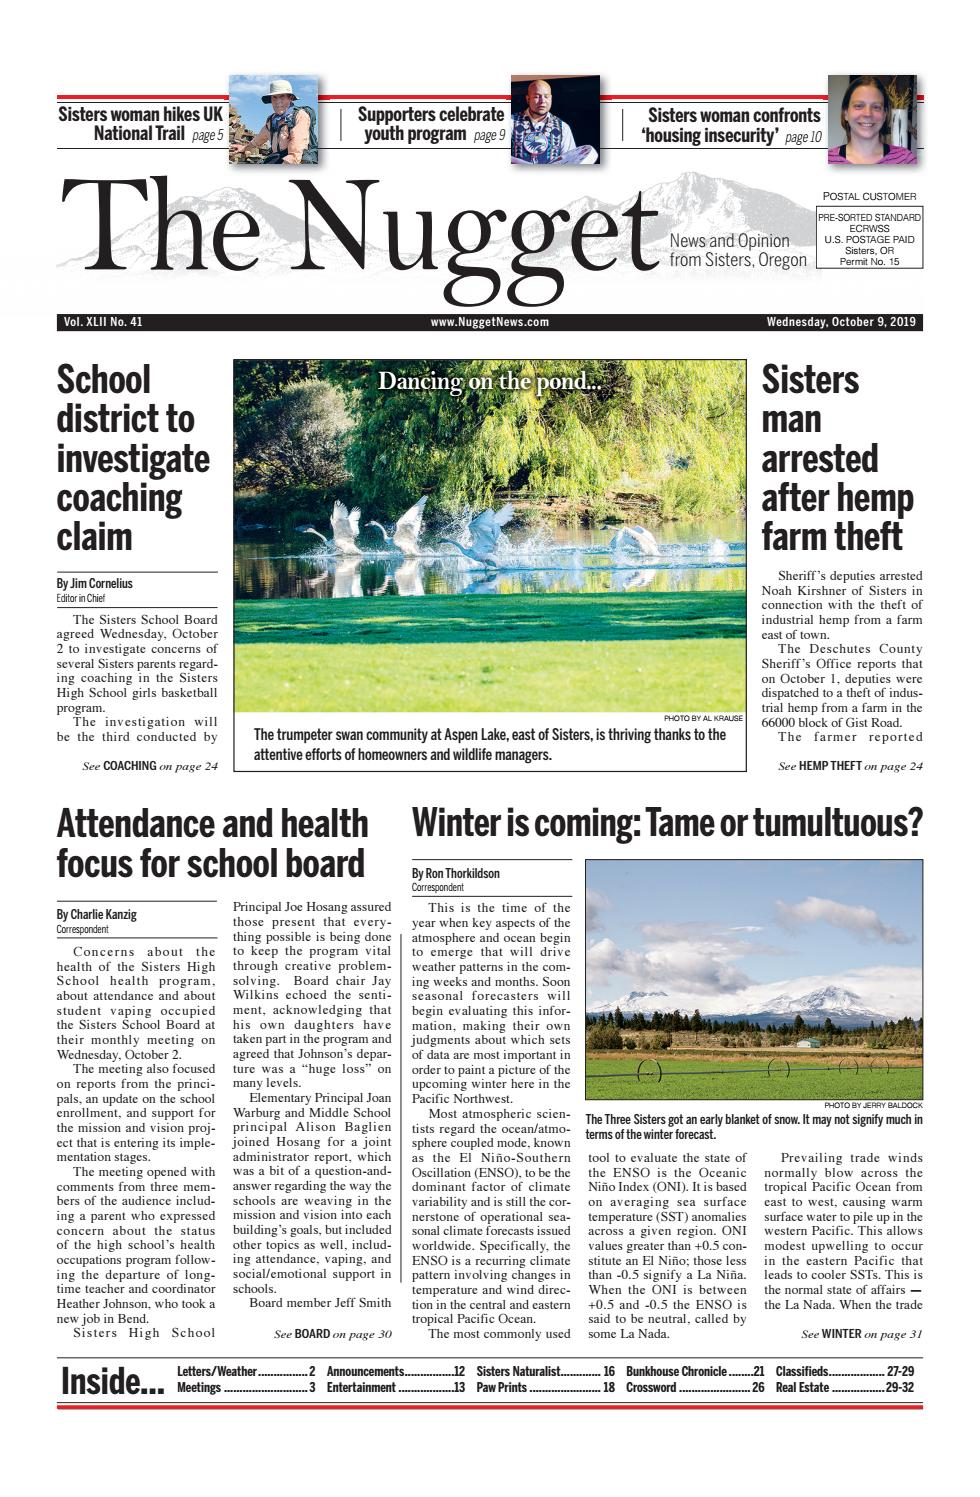 The Nugget Newspaper Vol. XLII No. 41 2019 10 09 by